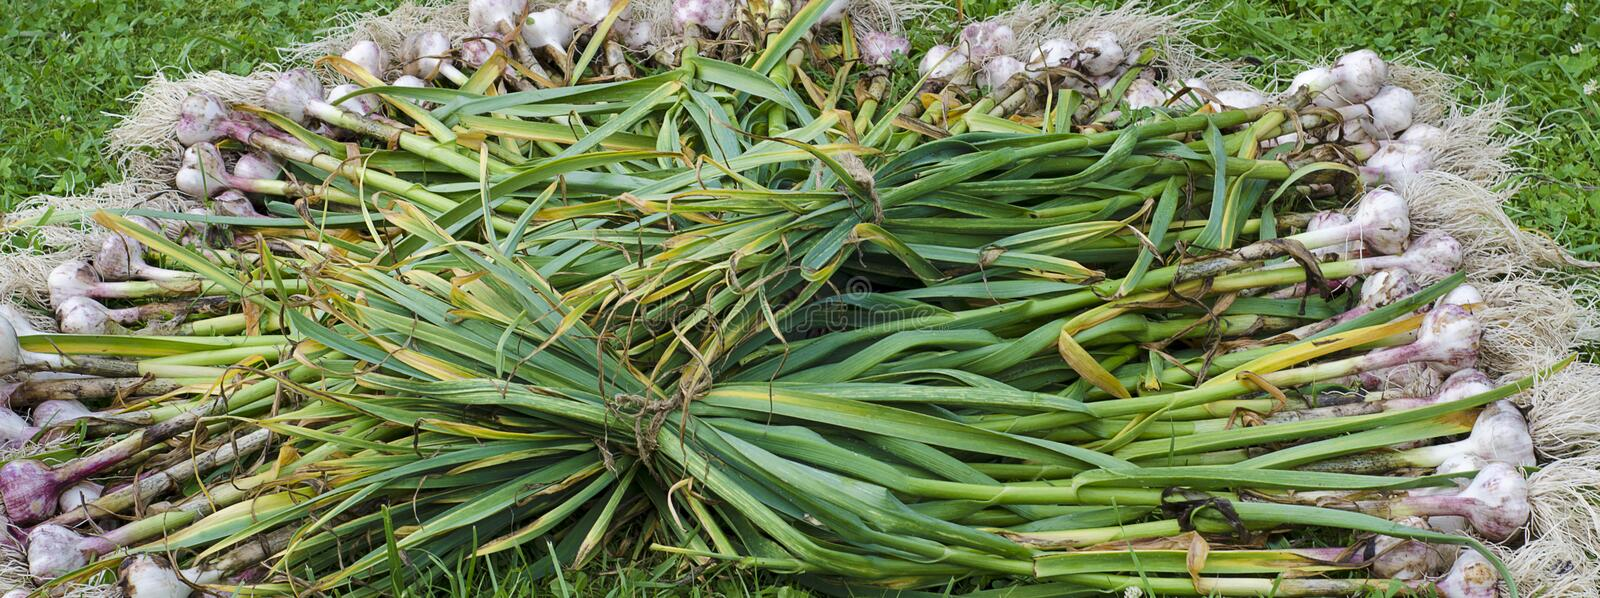 Garlic herb stock fan. The image of the harvested vegetable is the stem and root of garlic in large quantity I try on fresh air in autumn stock images